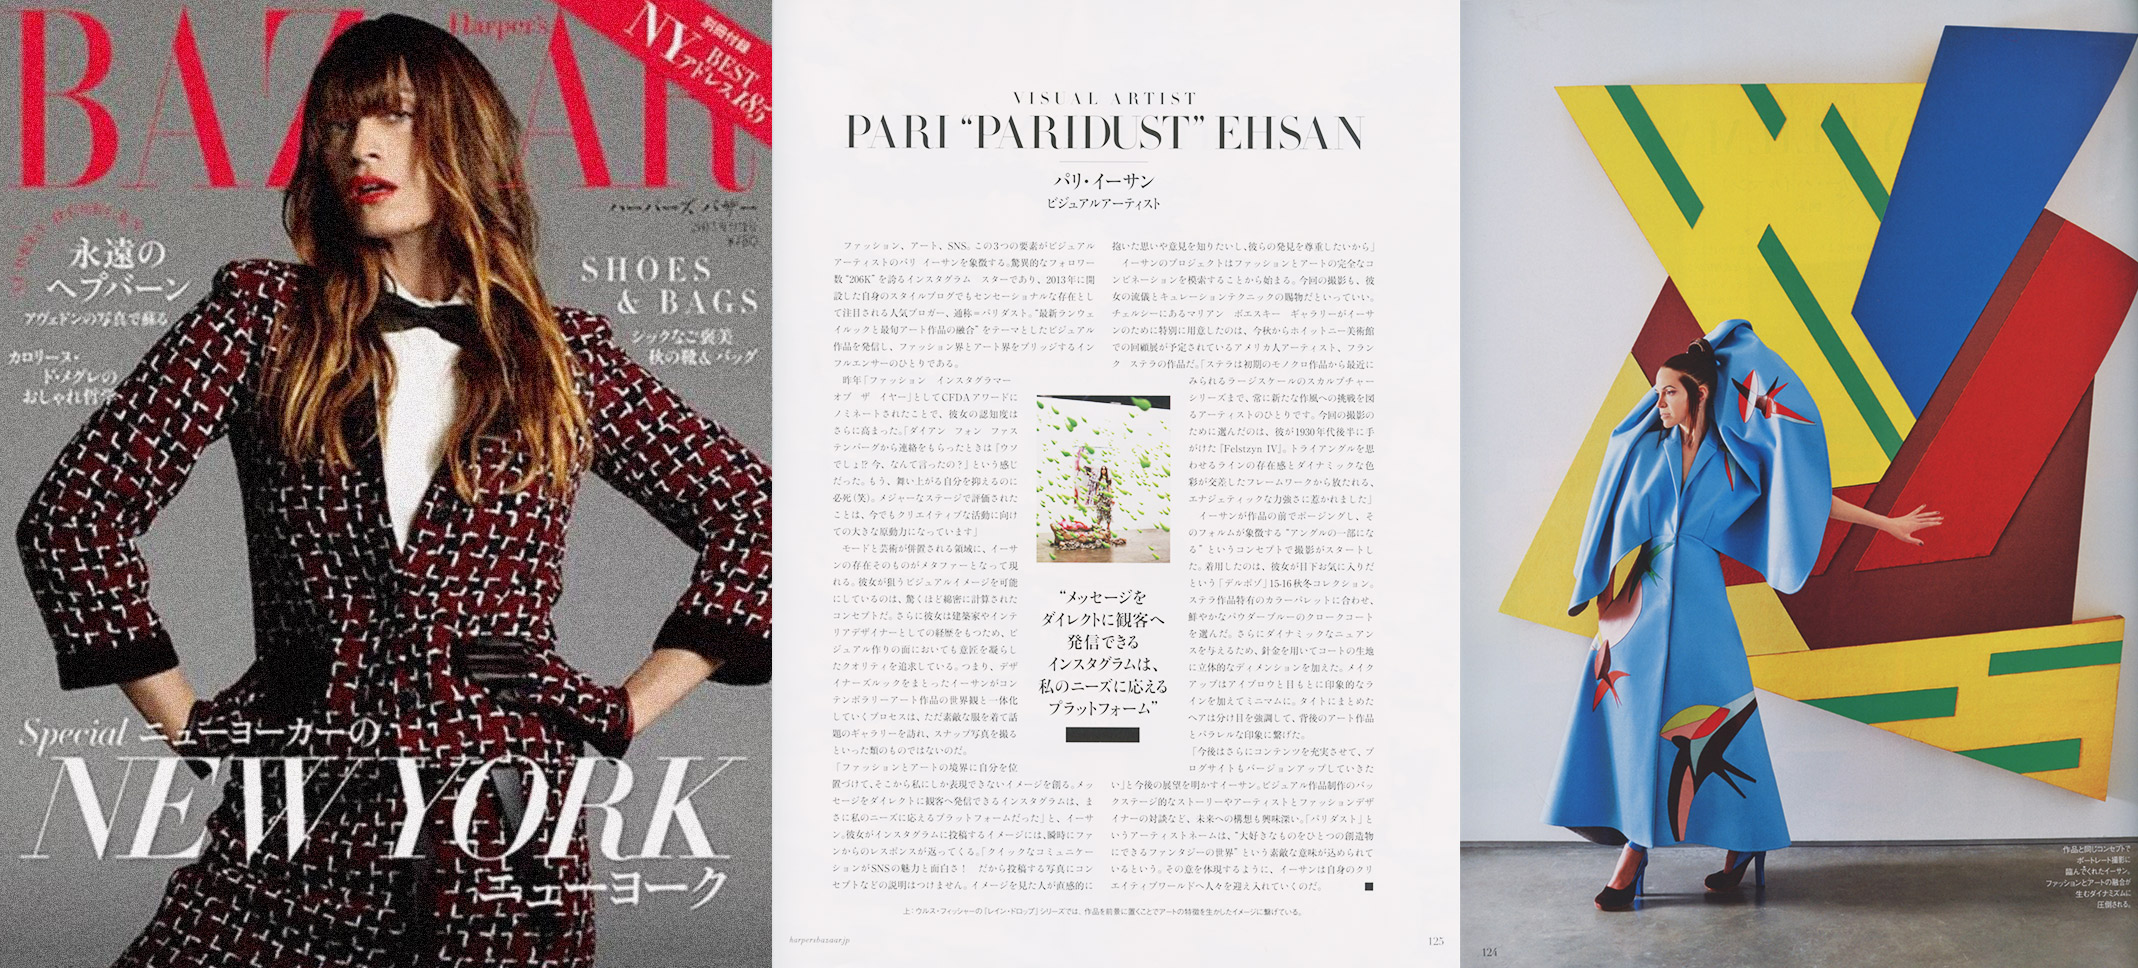 pd-press-2015-7-harpers-bazaar-jp